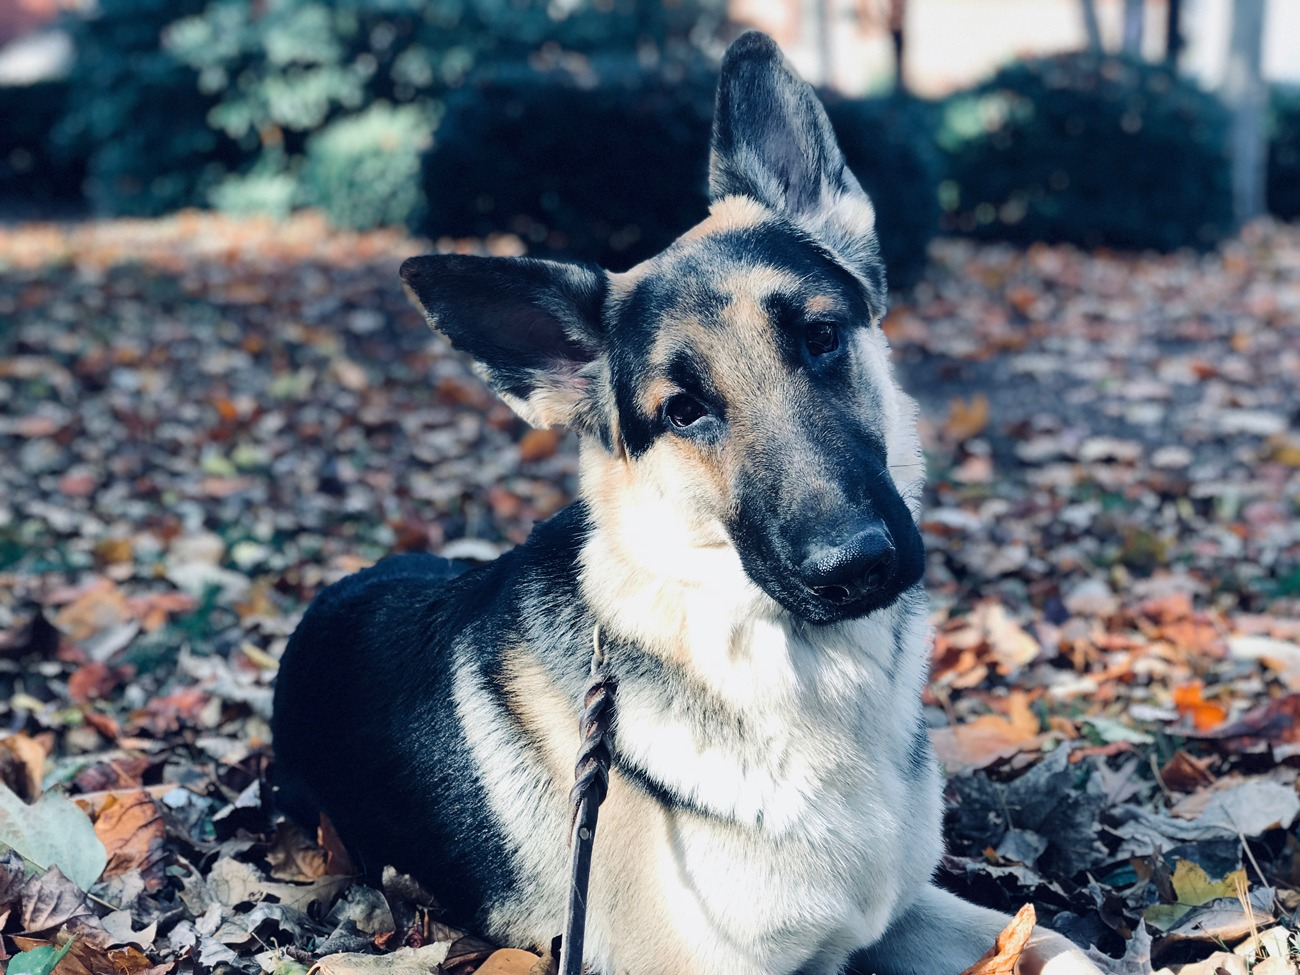 German Shepherd dog in training for human aggression during session In the park